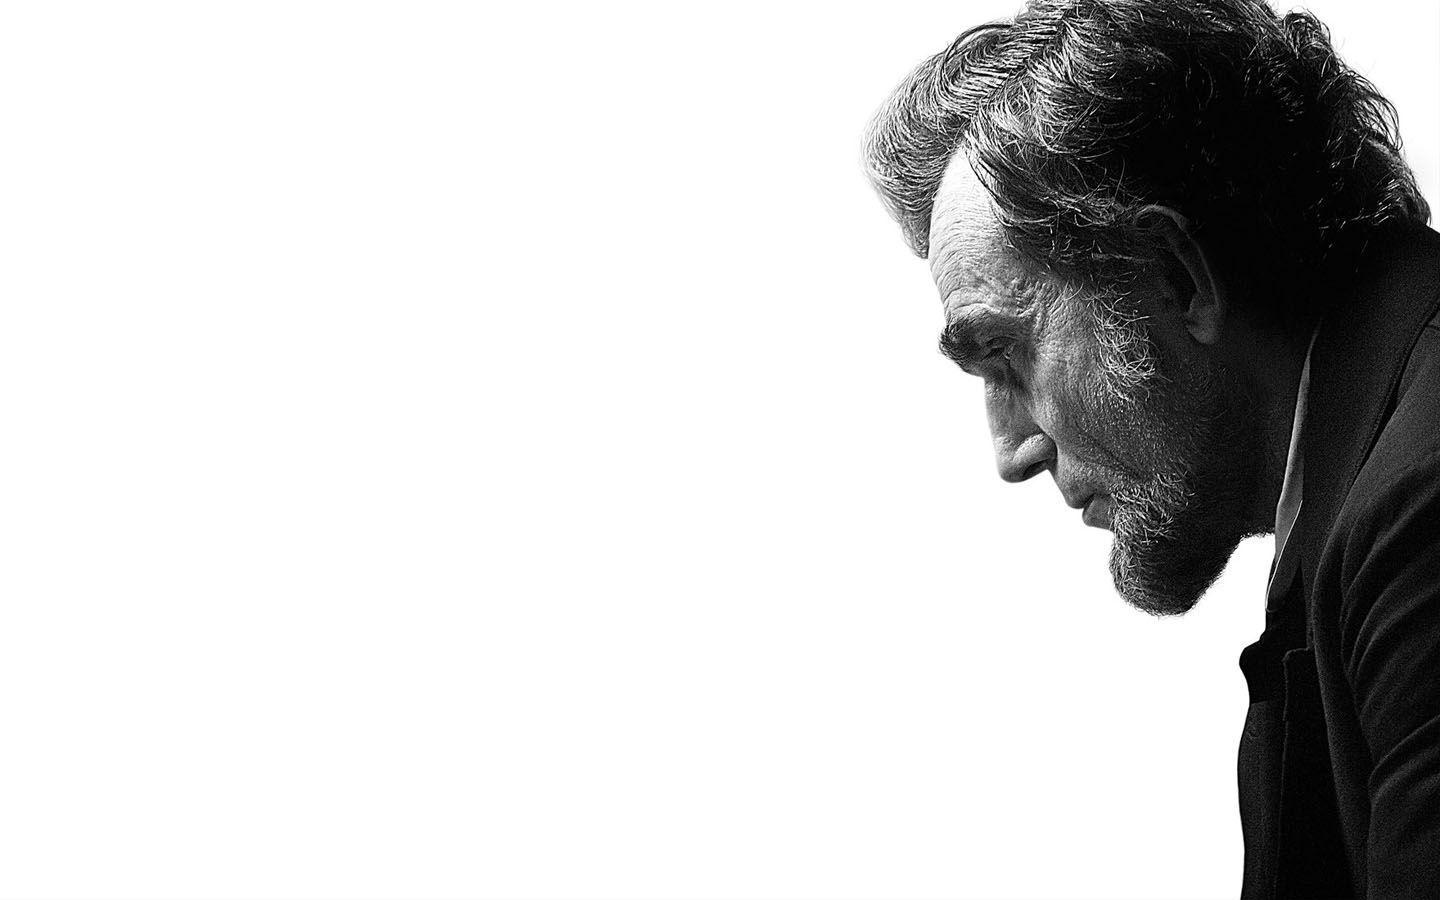 Abraham Lincoln Wallpapers - 4USkY.com